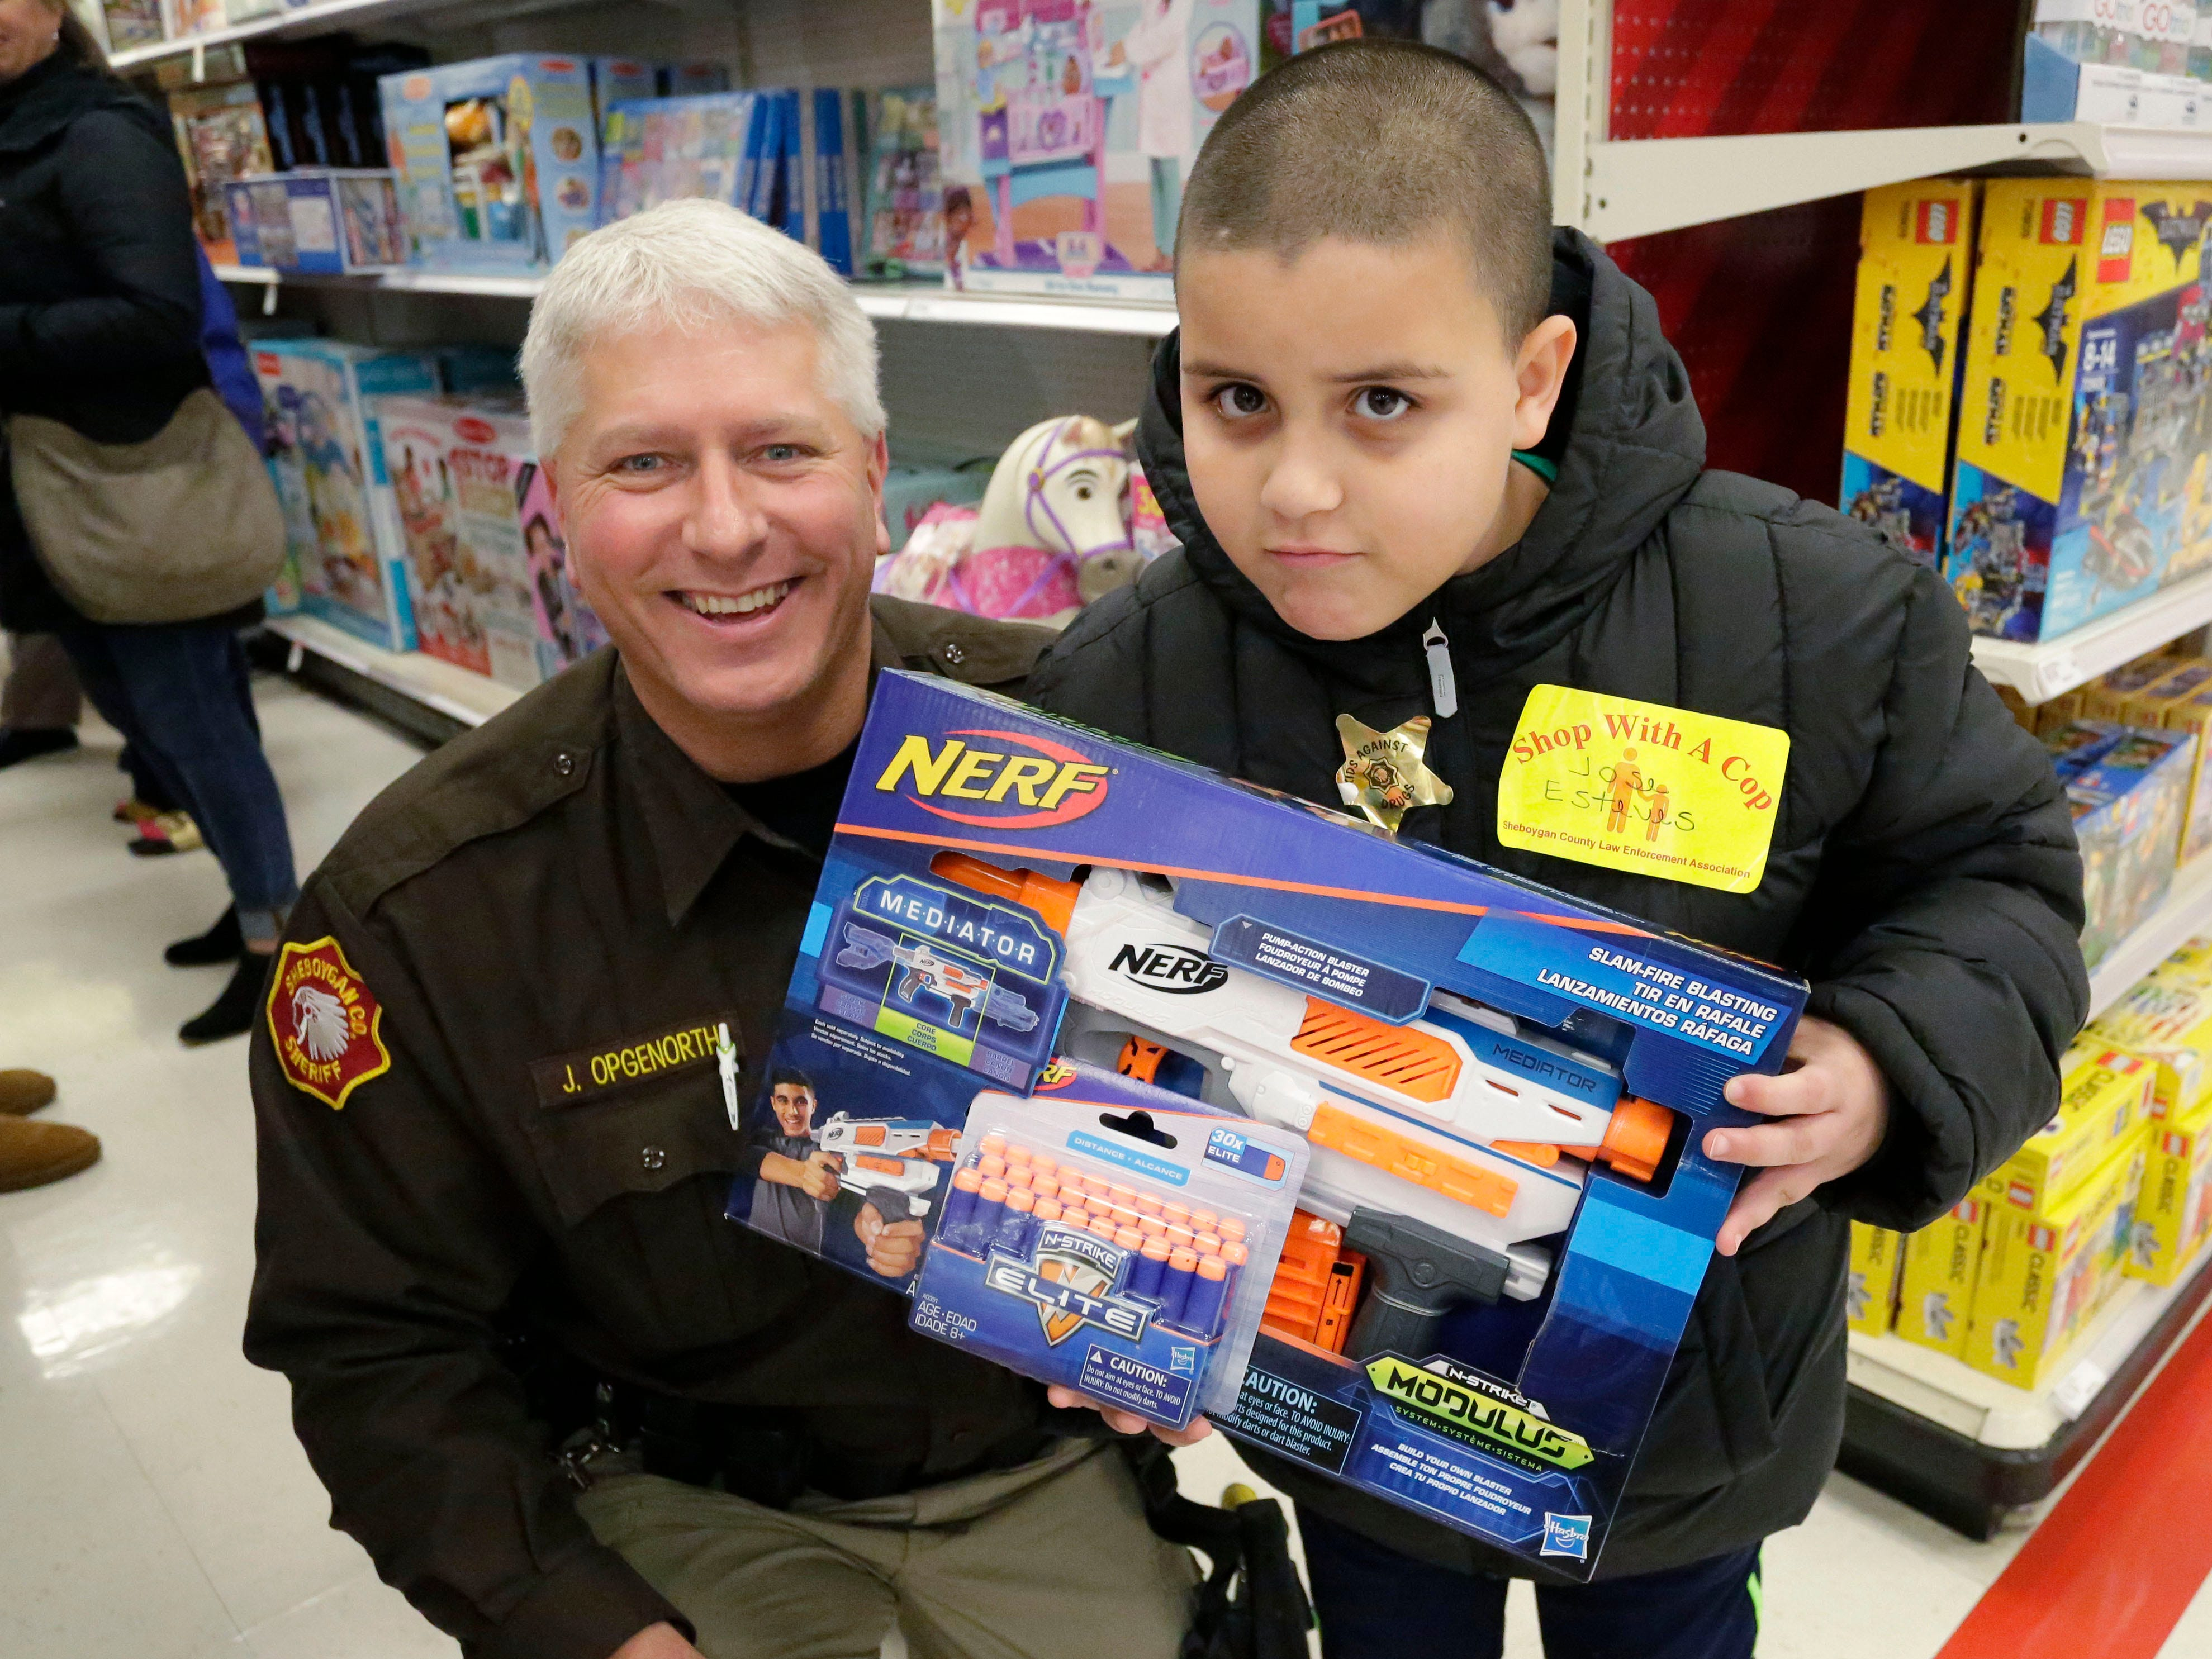 Sheriff Department's Jim Opgenorth, left, poses with Jose Esteves, 8, of Sheboygan, Wis., after selecting a toy during the 21st annual Shop with a cop, Tuesday, December 4, 2018, in Kohler, Wis. The program, in its 21st year, raises funds to give children a chance to buy holiday gifts that they otherwise might not receive.